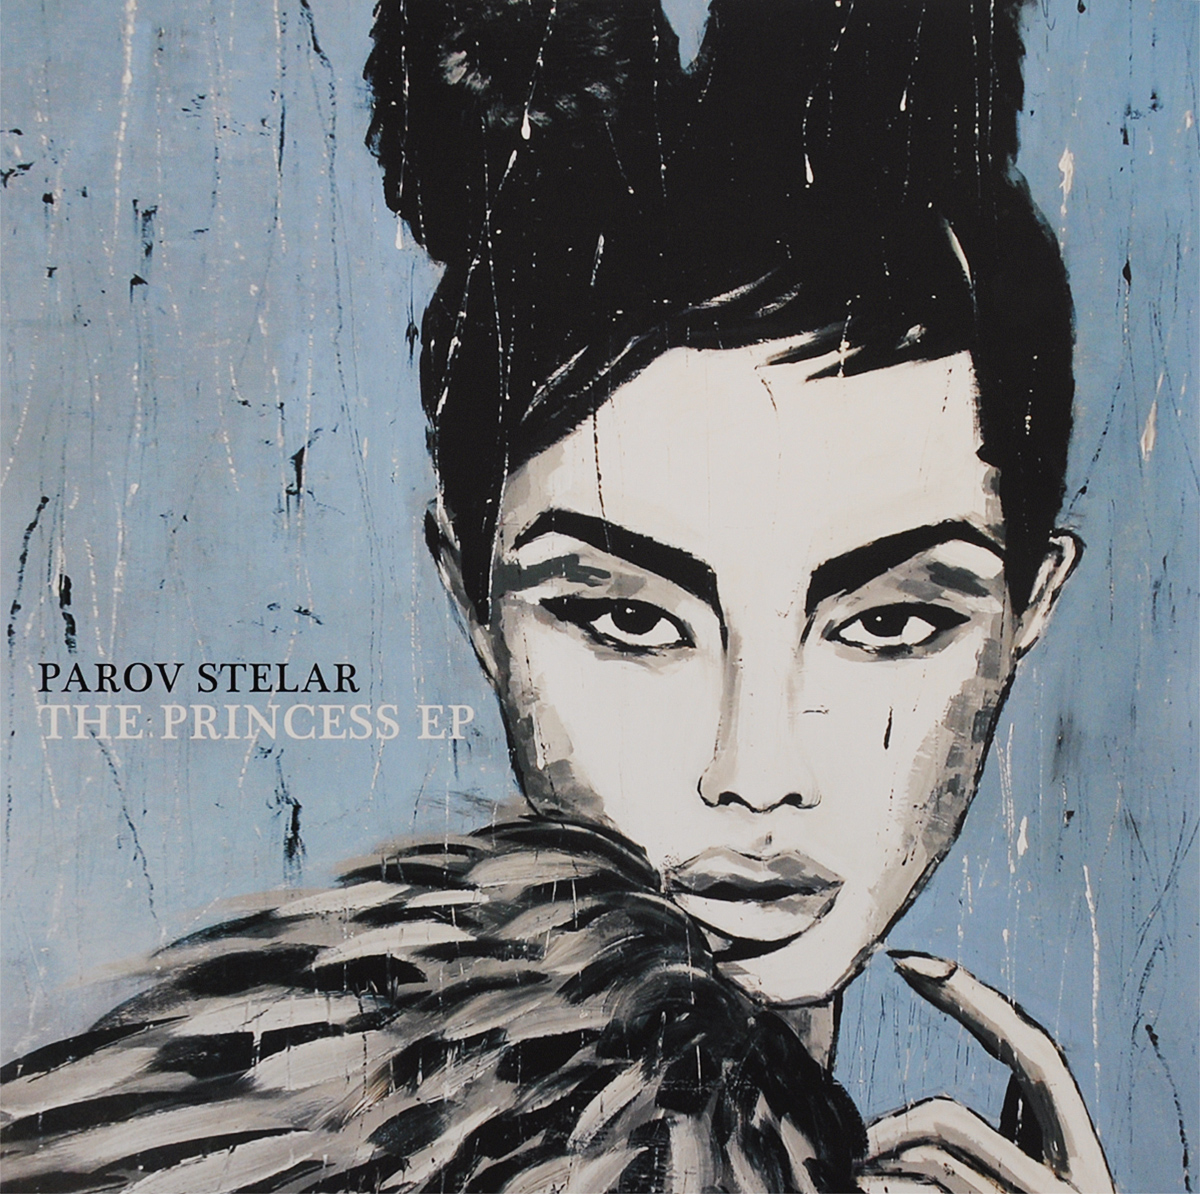 Parov Stelar Parov Stelar. The Princess EP (2 LP) port noir port noir   any way the wind carries  2 lp